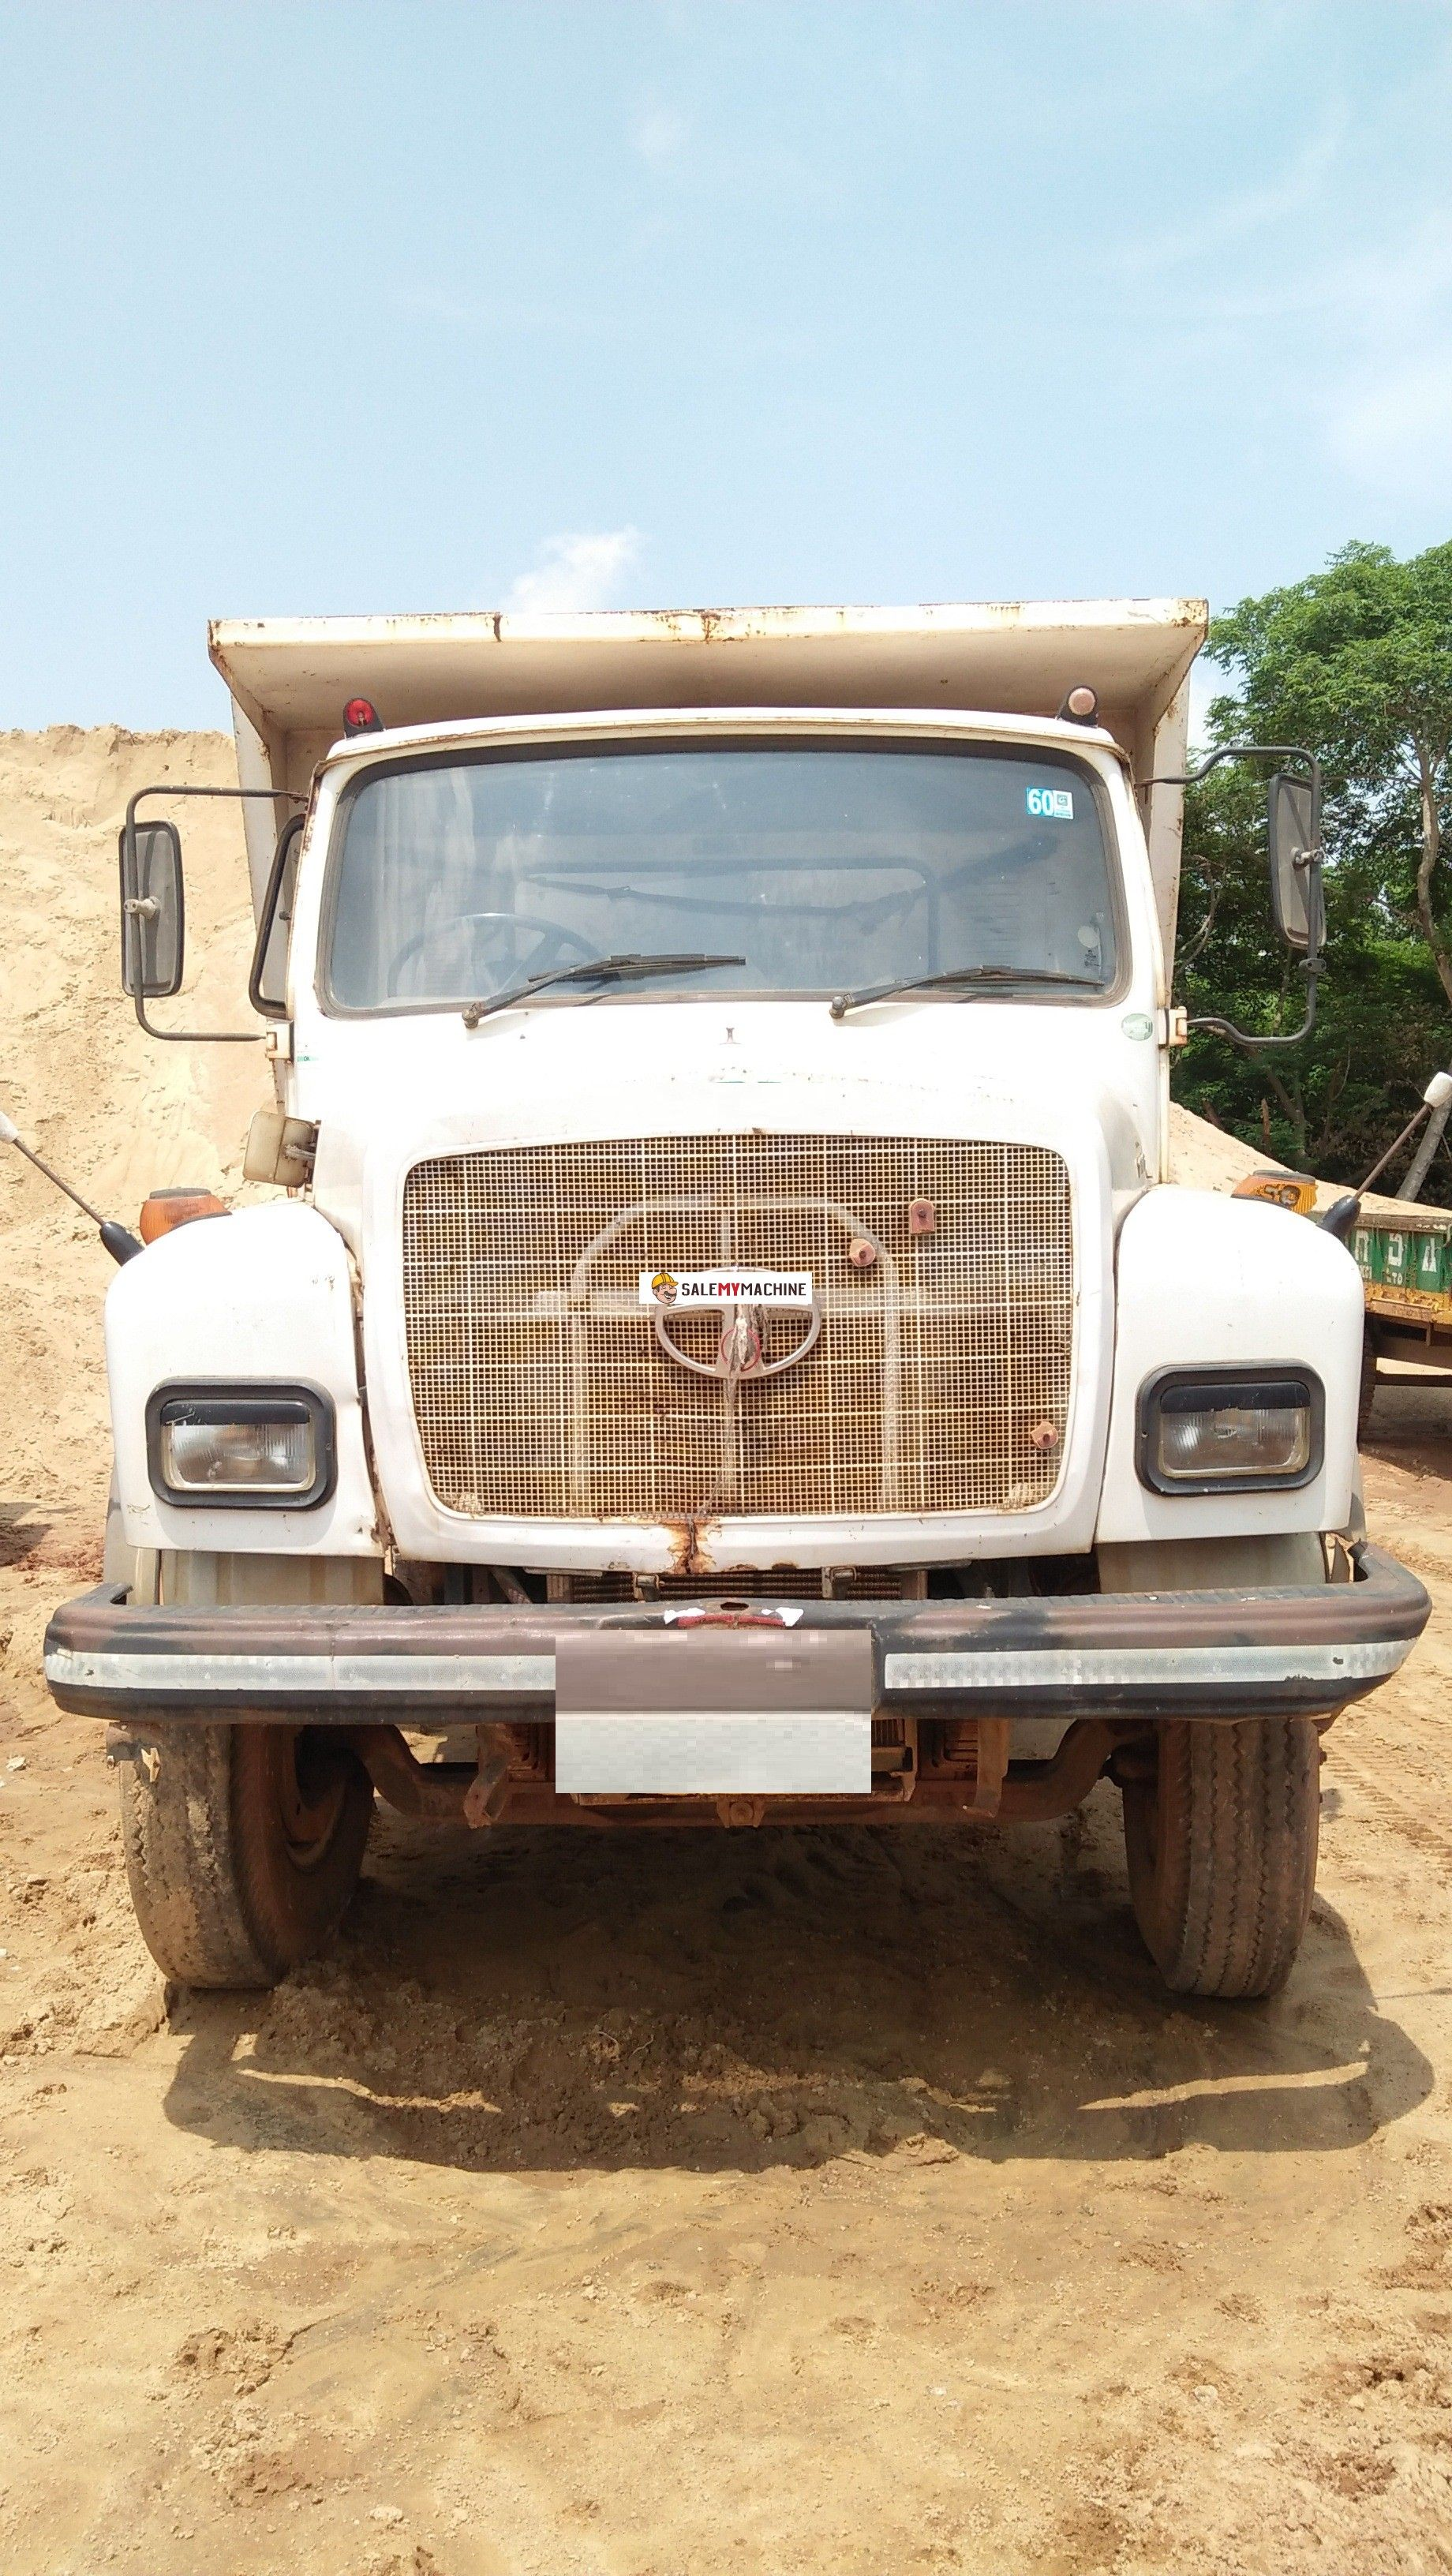 USED CONSTRUCTION EQUIPMENT SALE IN INDIA.USED TATA 6 WHEELER TIPPER FOR  SALE IN CHATTISHGADH AT salemymachine.com